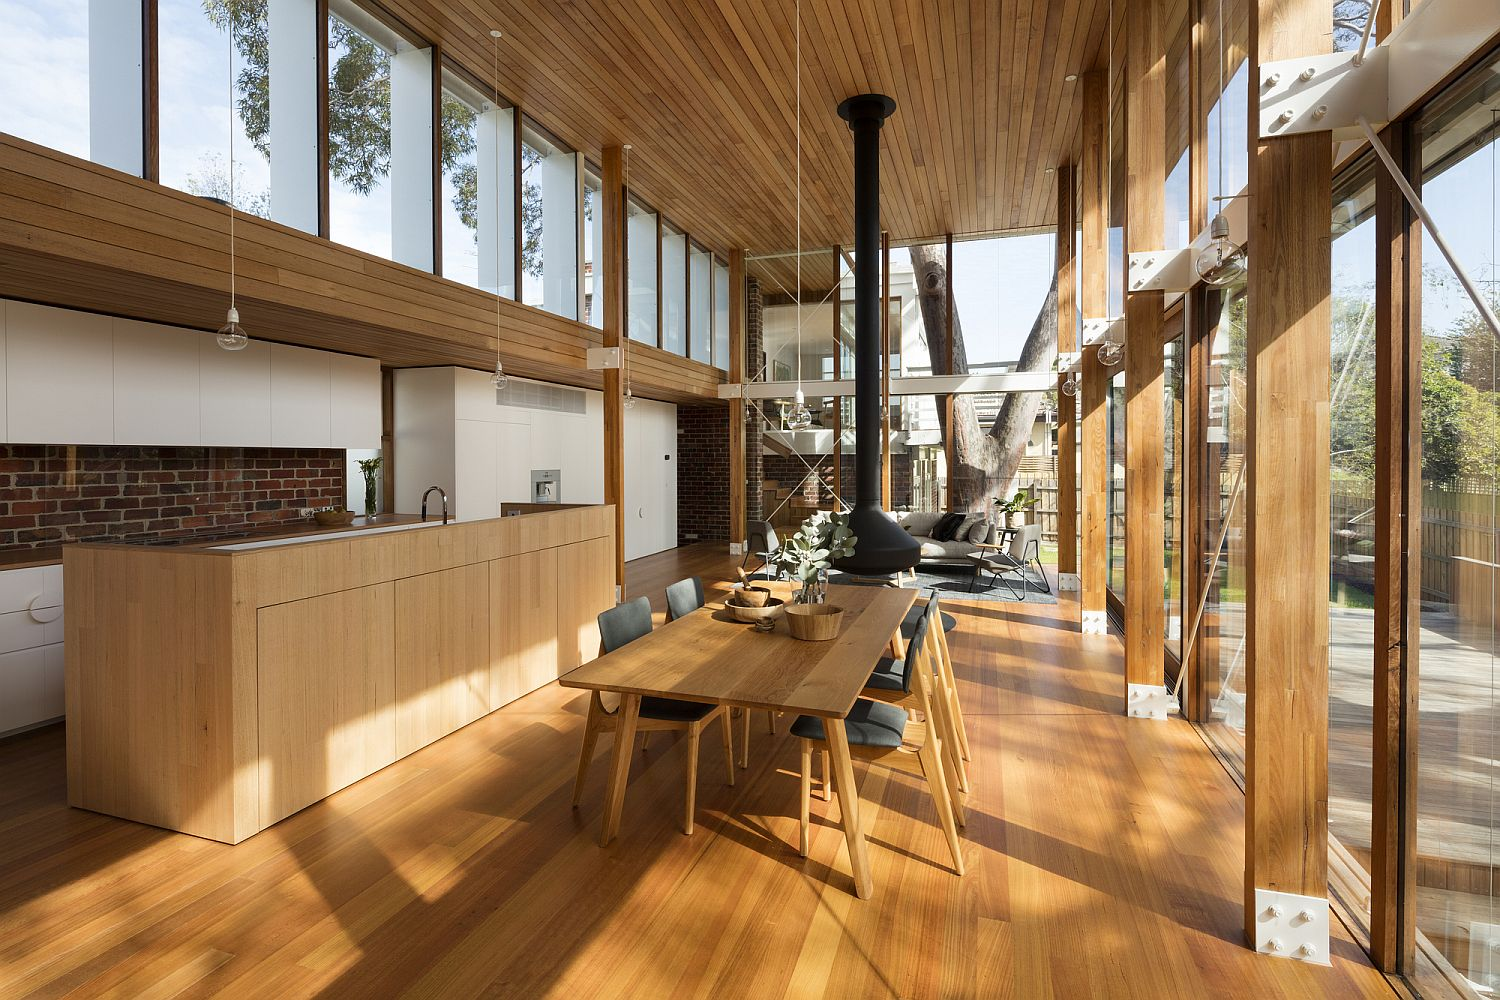 Beautiful brick walls and sweeping spaces suburban home for Natural light in homes